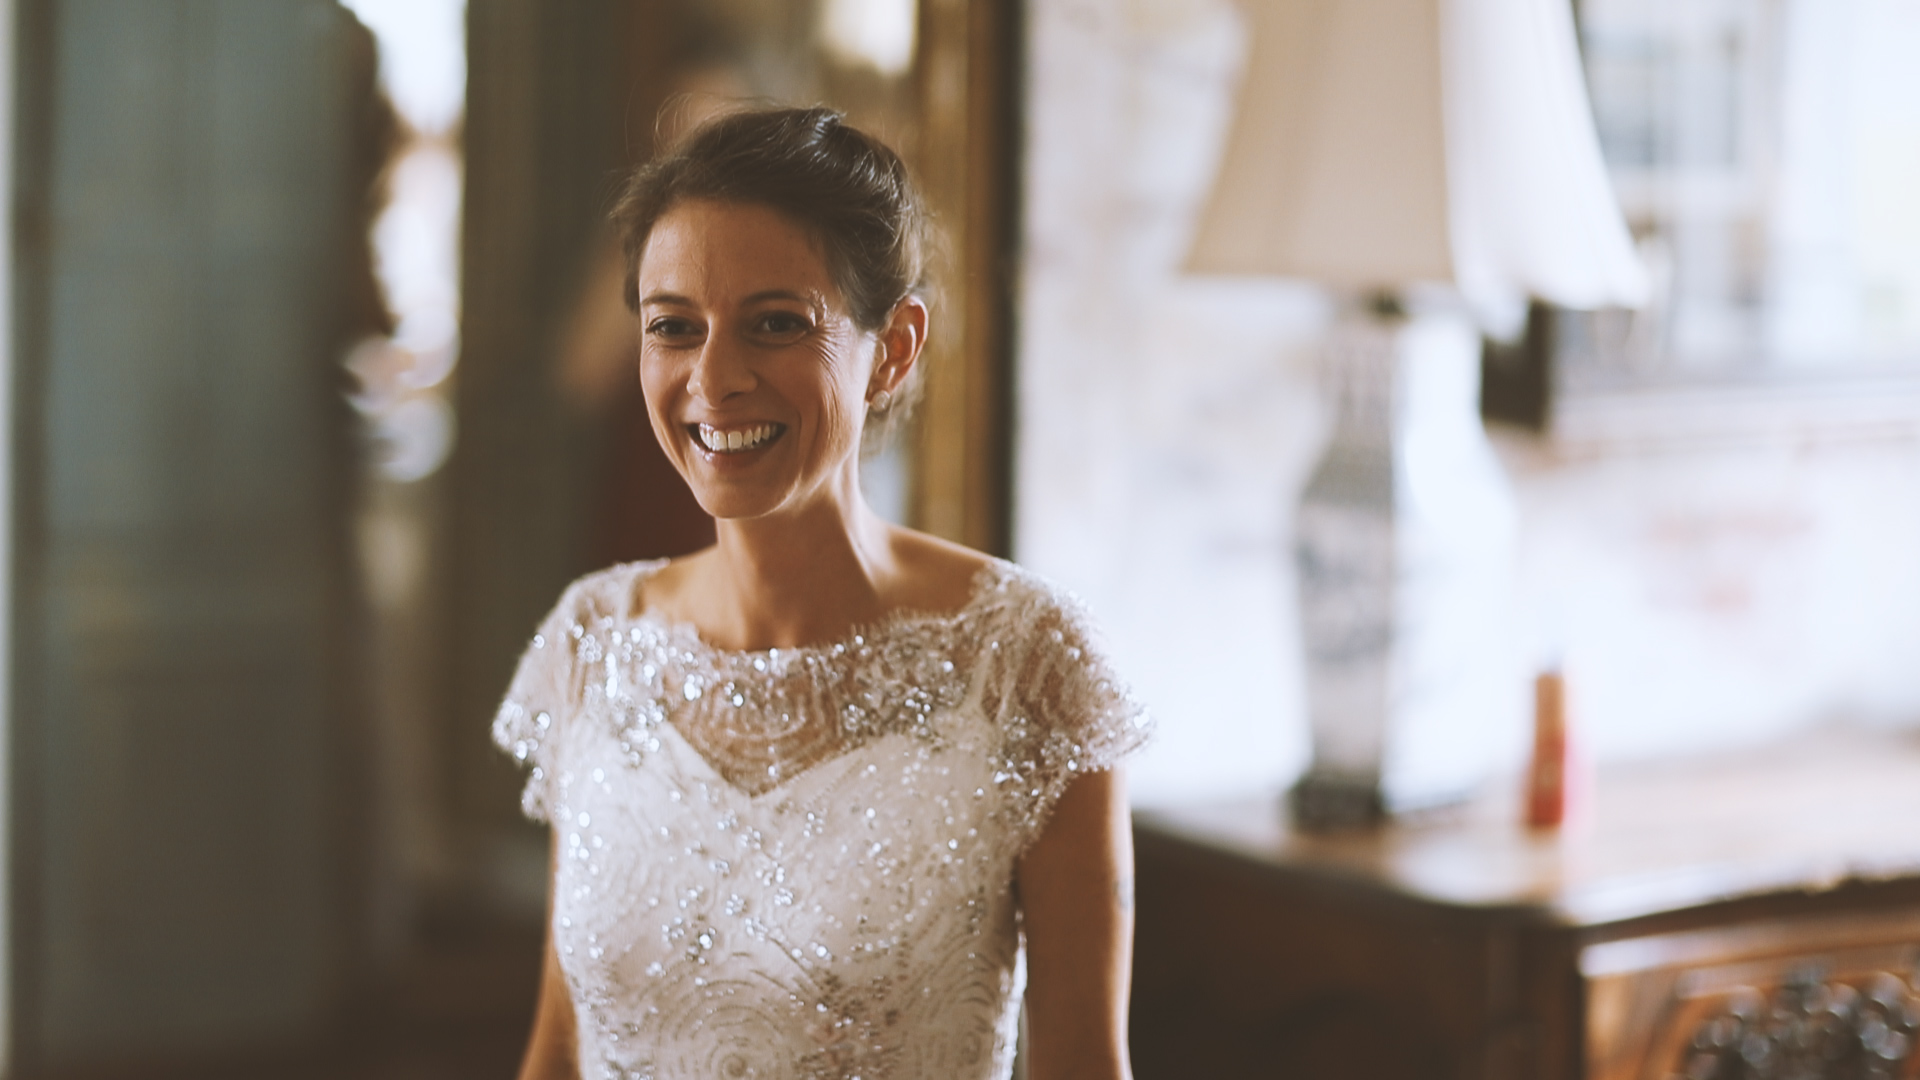 Race and Religious New Orleans Wedding - Bride Film